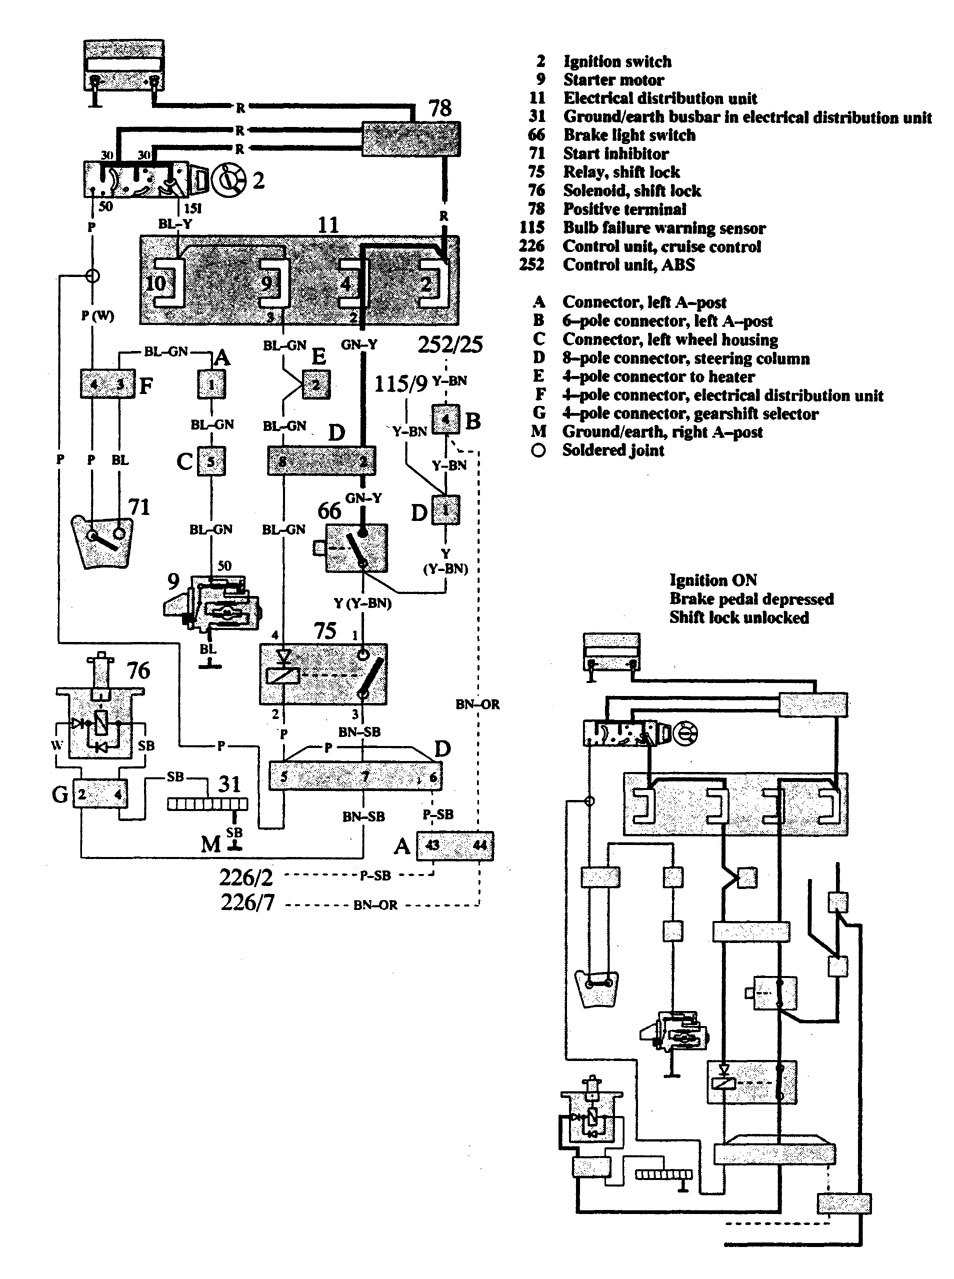 Wiring Diagram Volvo Fe : Volvo radio wiring diagram imageresizertool